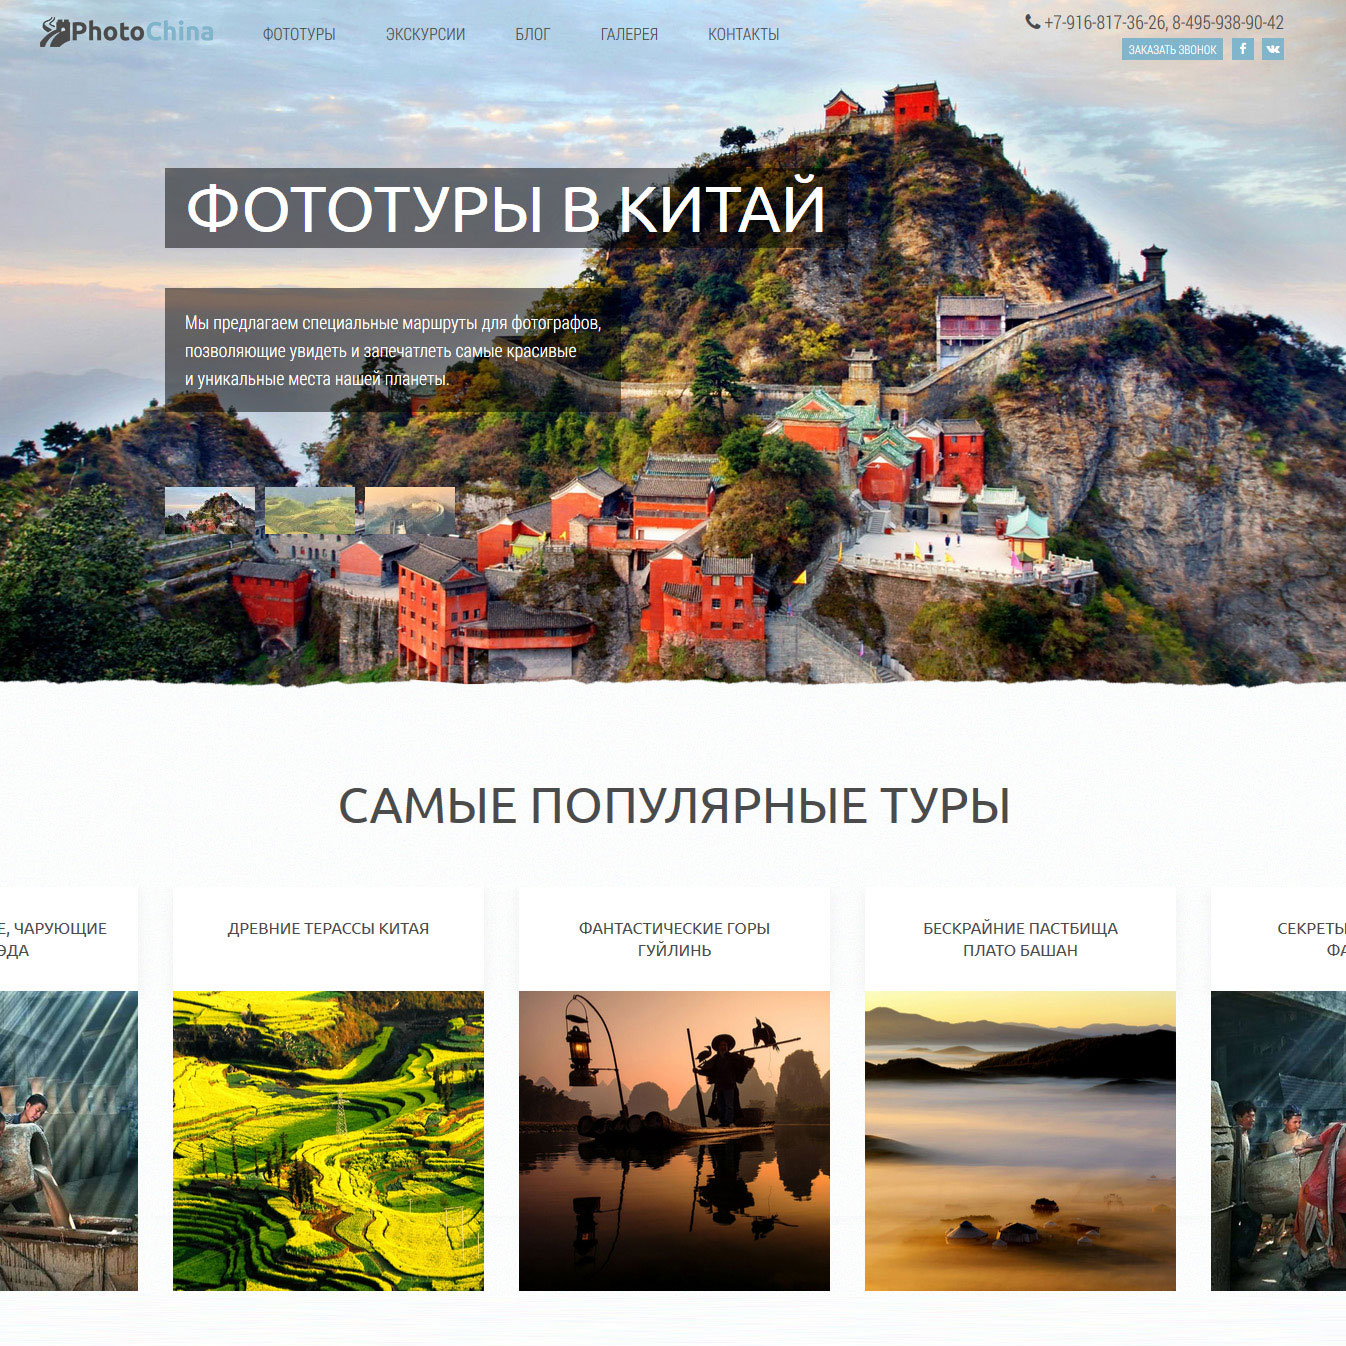 fotochina.ru